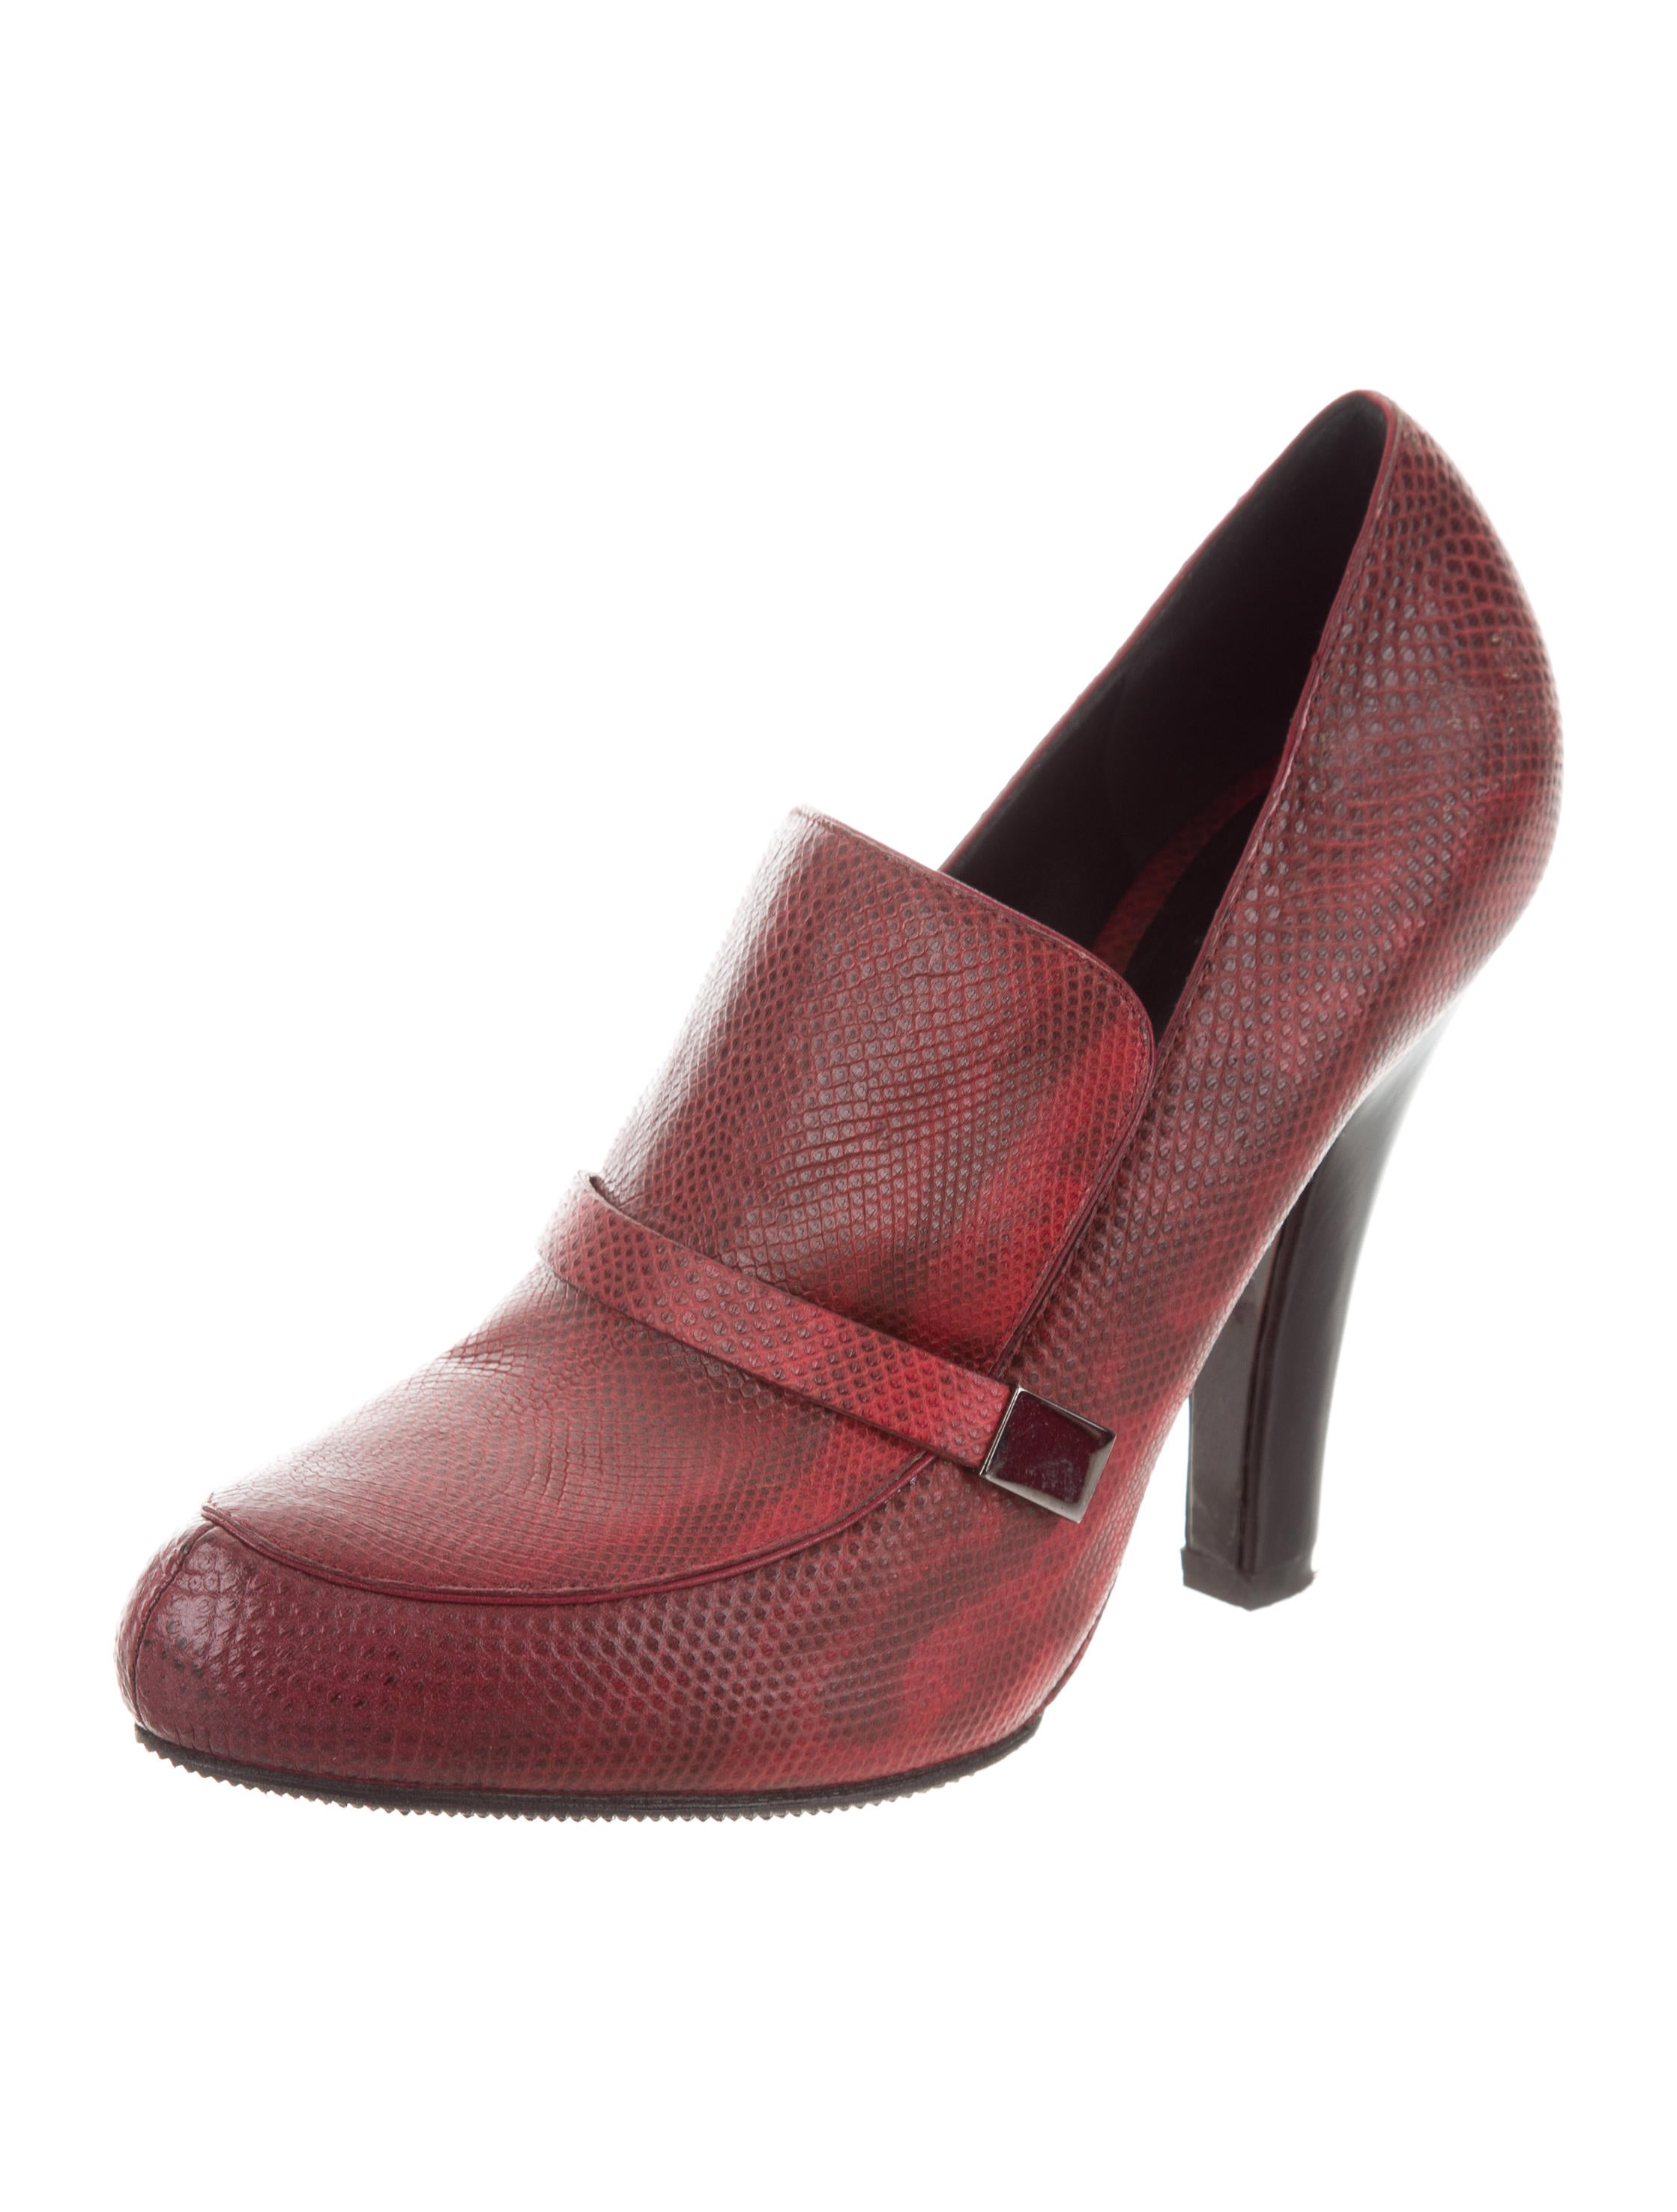 store sale online Devi Kroell Karung Pointed-Toe Booties cheap real authentic buy cheap latest sale visit qlCw3lluH